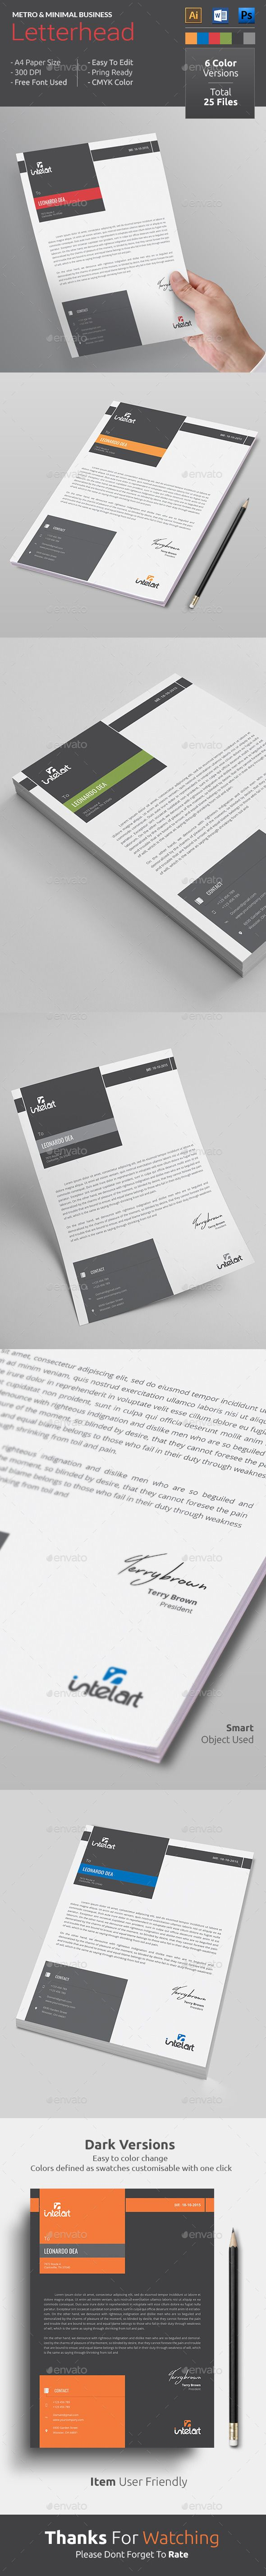 #LetterheadTemplateDesign, awesome for the company letterhead template. Just download and edit, it's that easy. Color versions and word, psd, ai letterhead formats. Download http://graphicriver.net/item/letterhead/13623343?ref=themedevisers